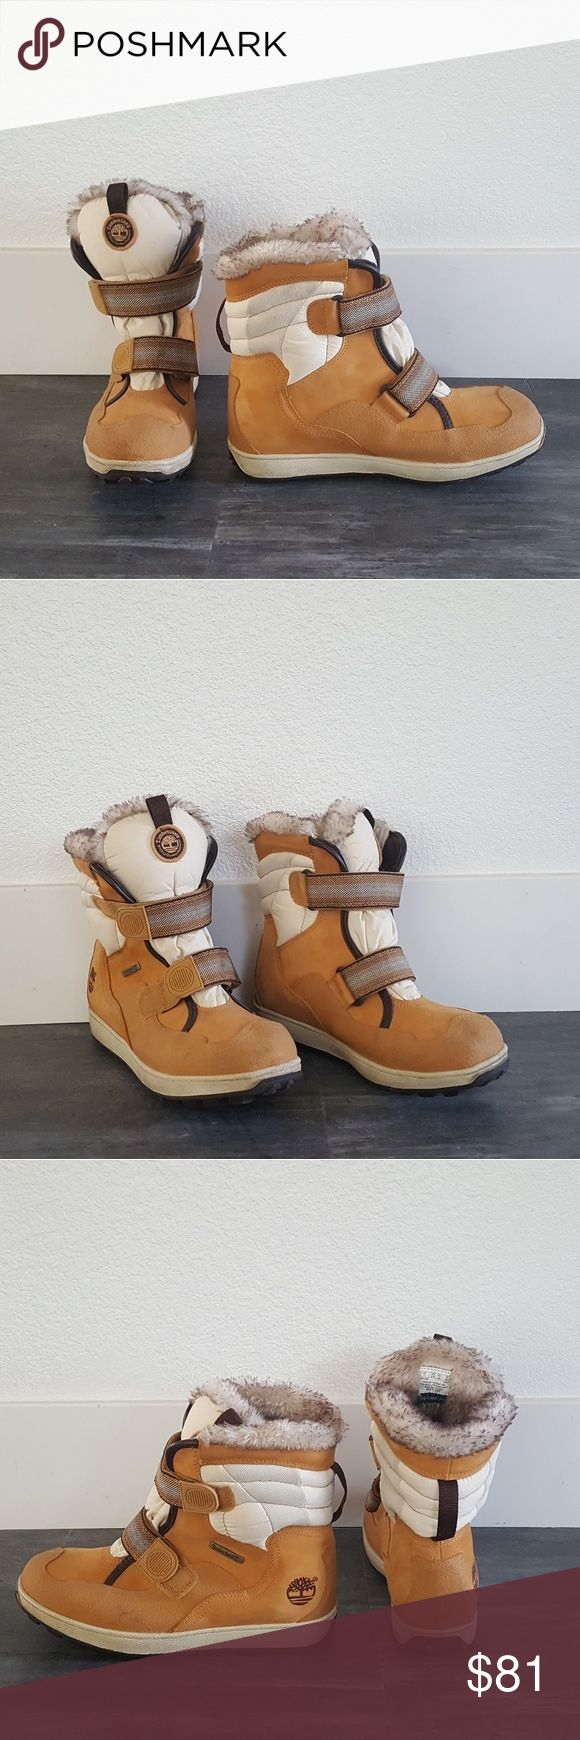 Camel Fur Detailed Timberland Snow Boots Never Worn Timberland Shoes Winter & Rain Boots